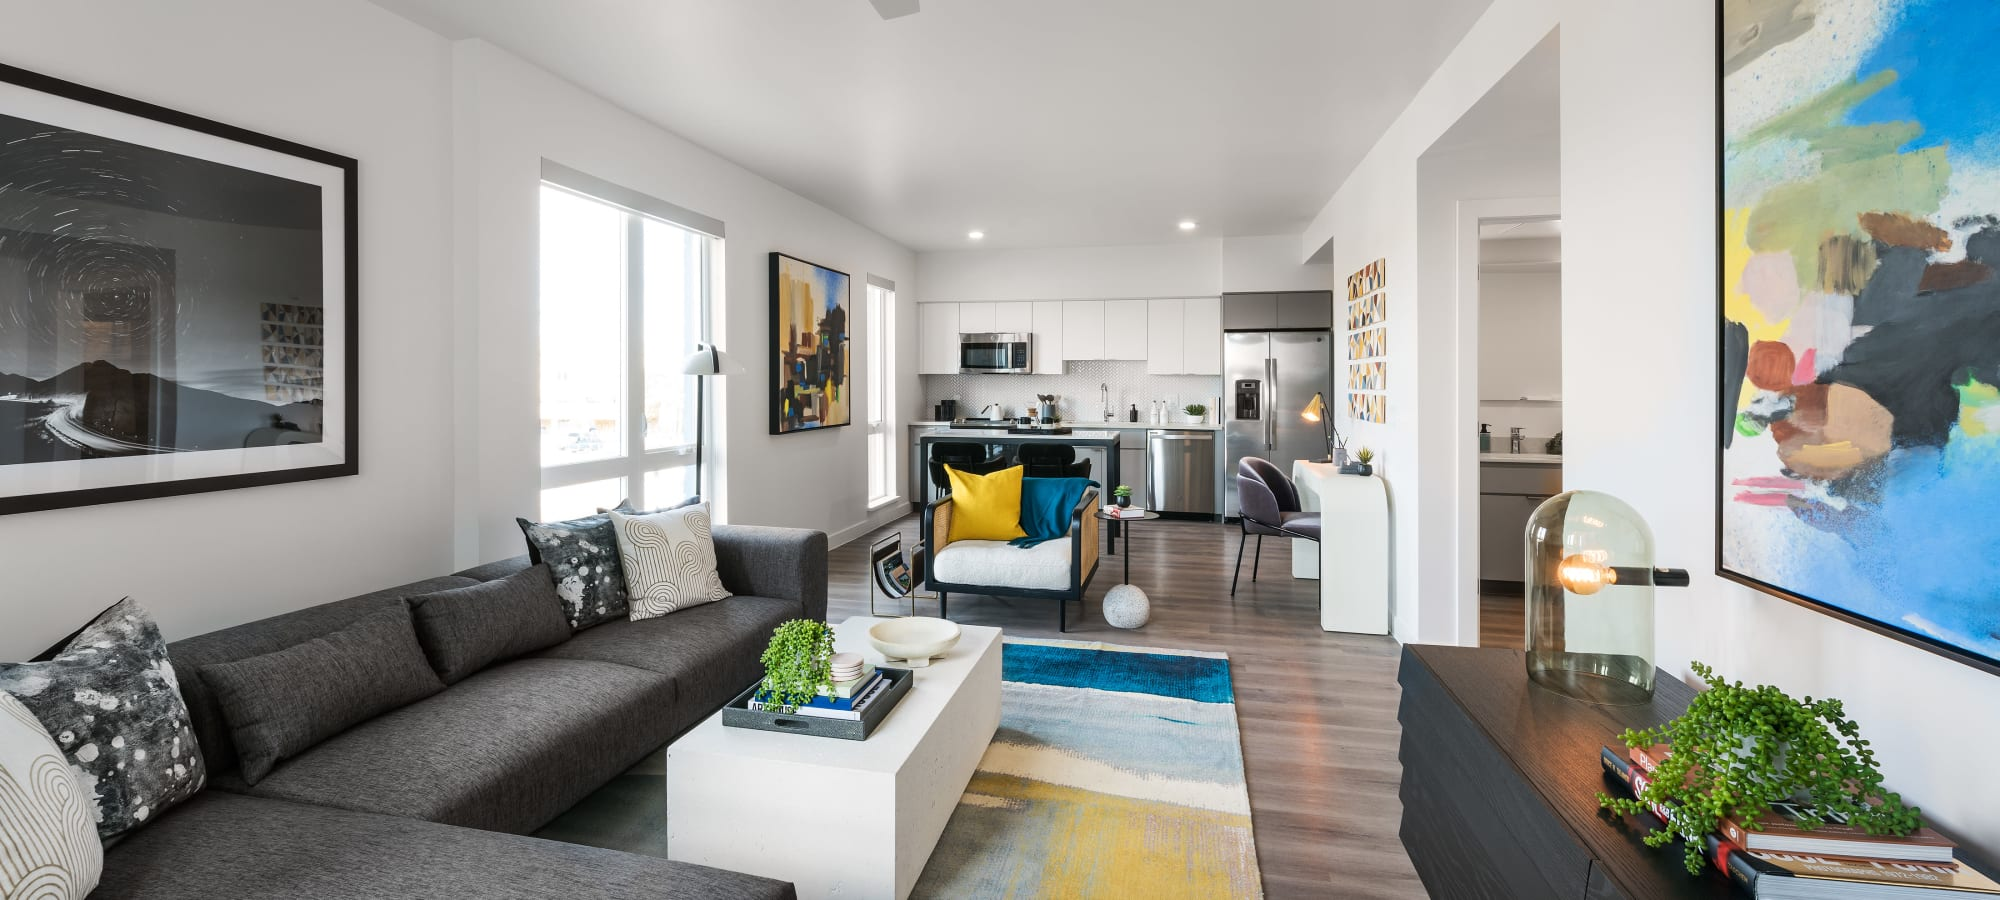 View from Living Room to Kitchen at Hudson on Farmer in Tempe, Arizona